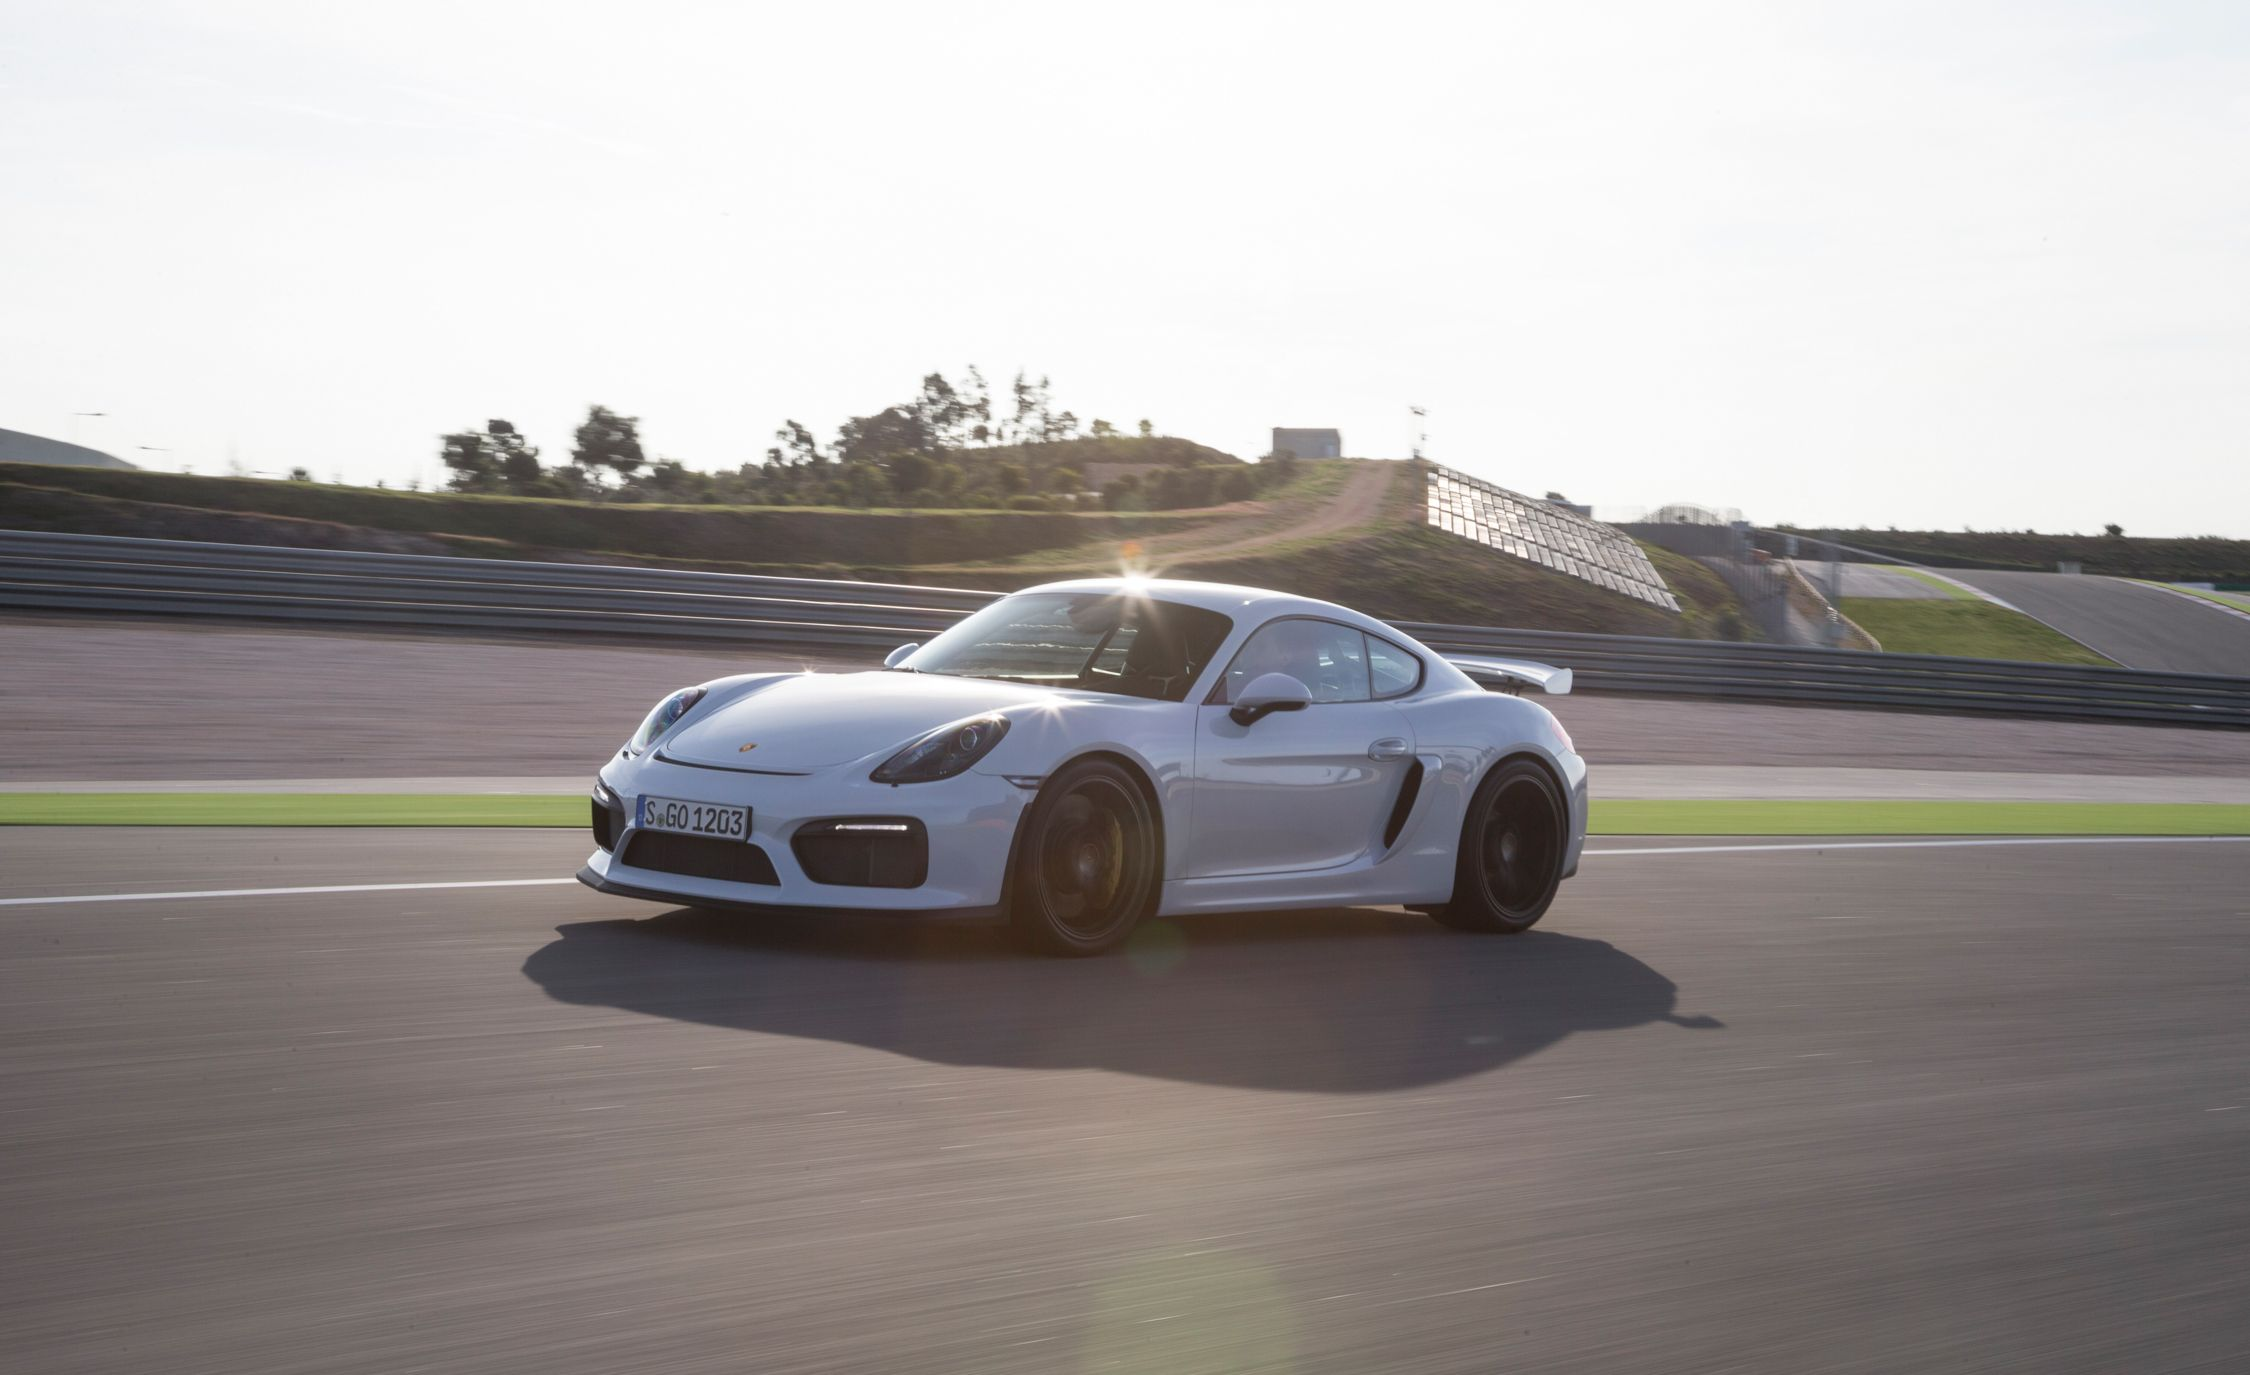 2016 porsche cayman gt4 pictures | photo gallery | car and driver